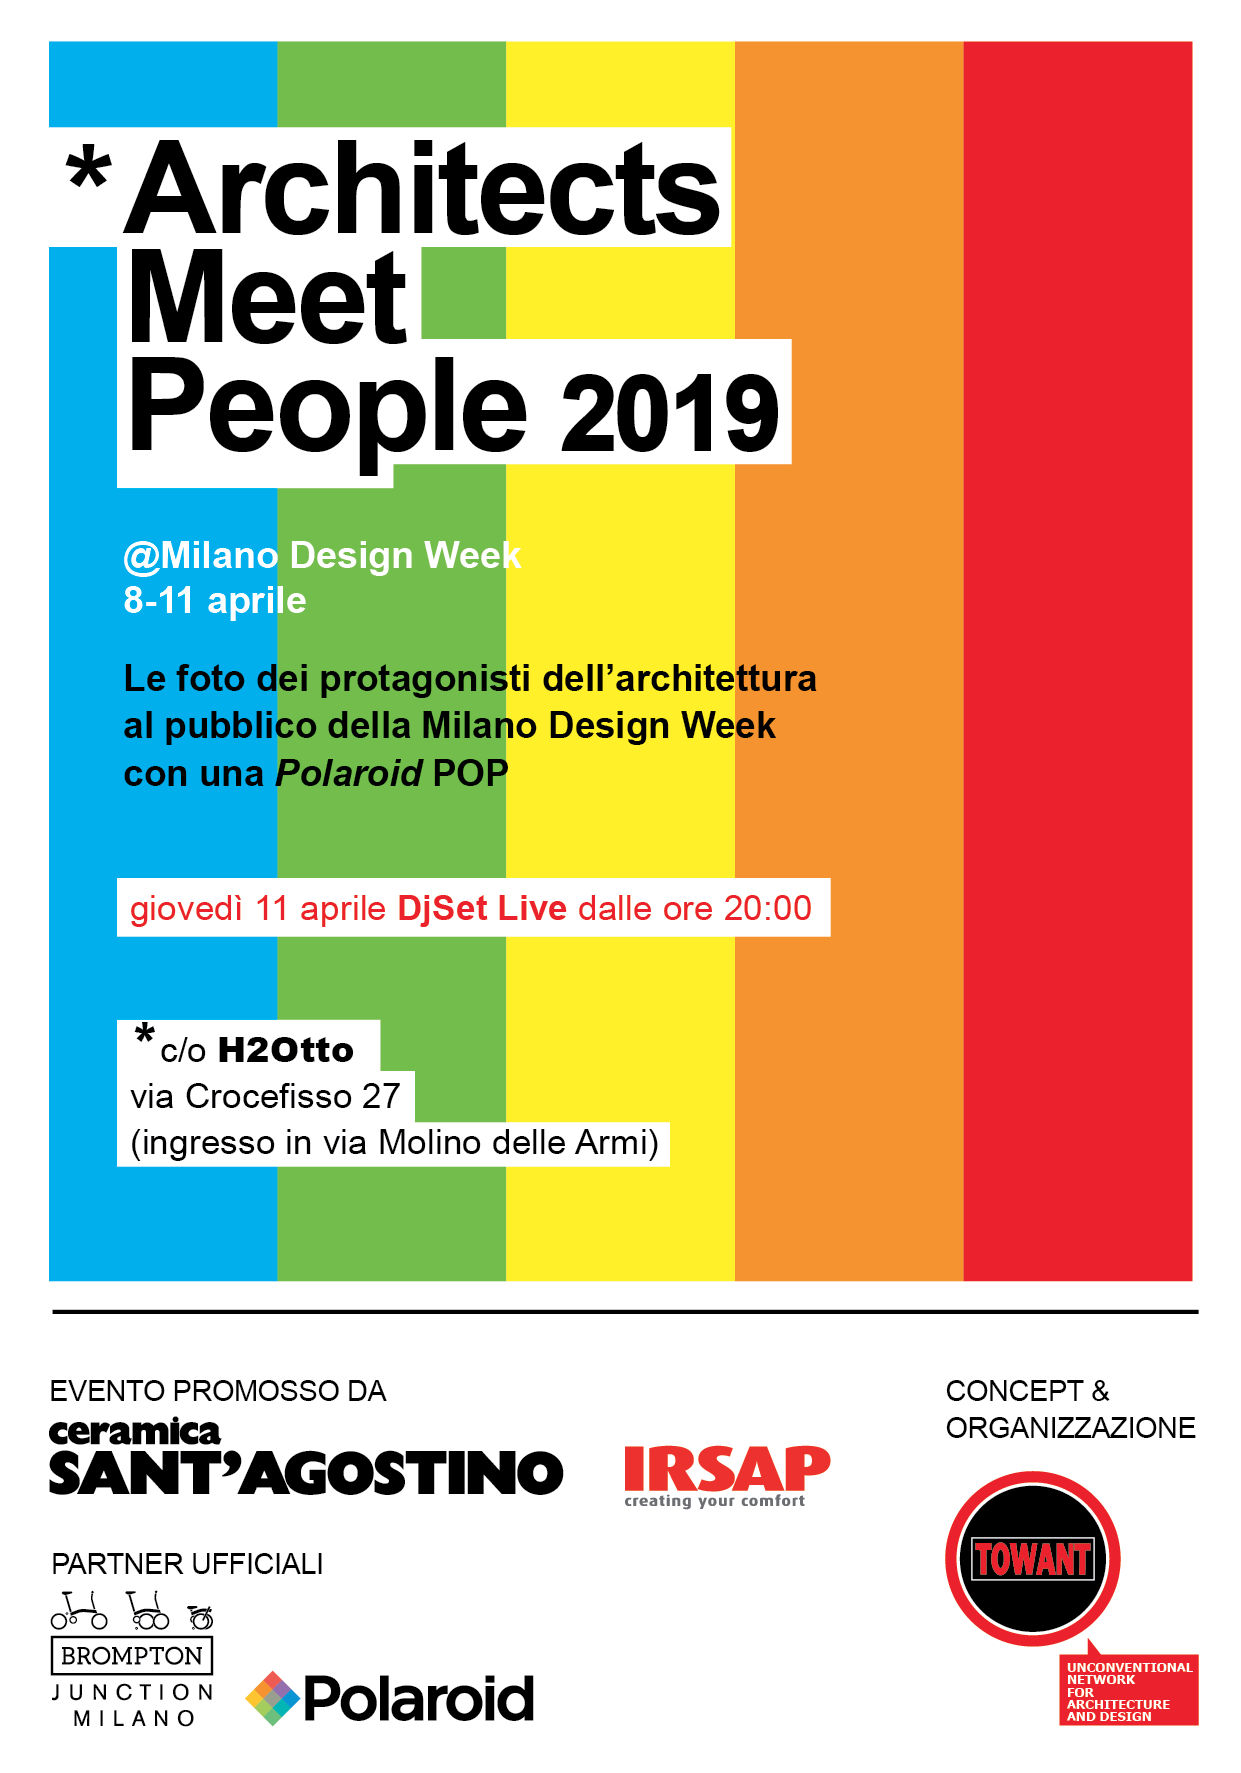 Architects Meet People 2019